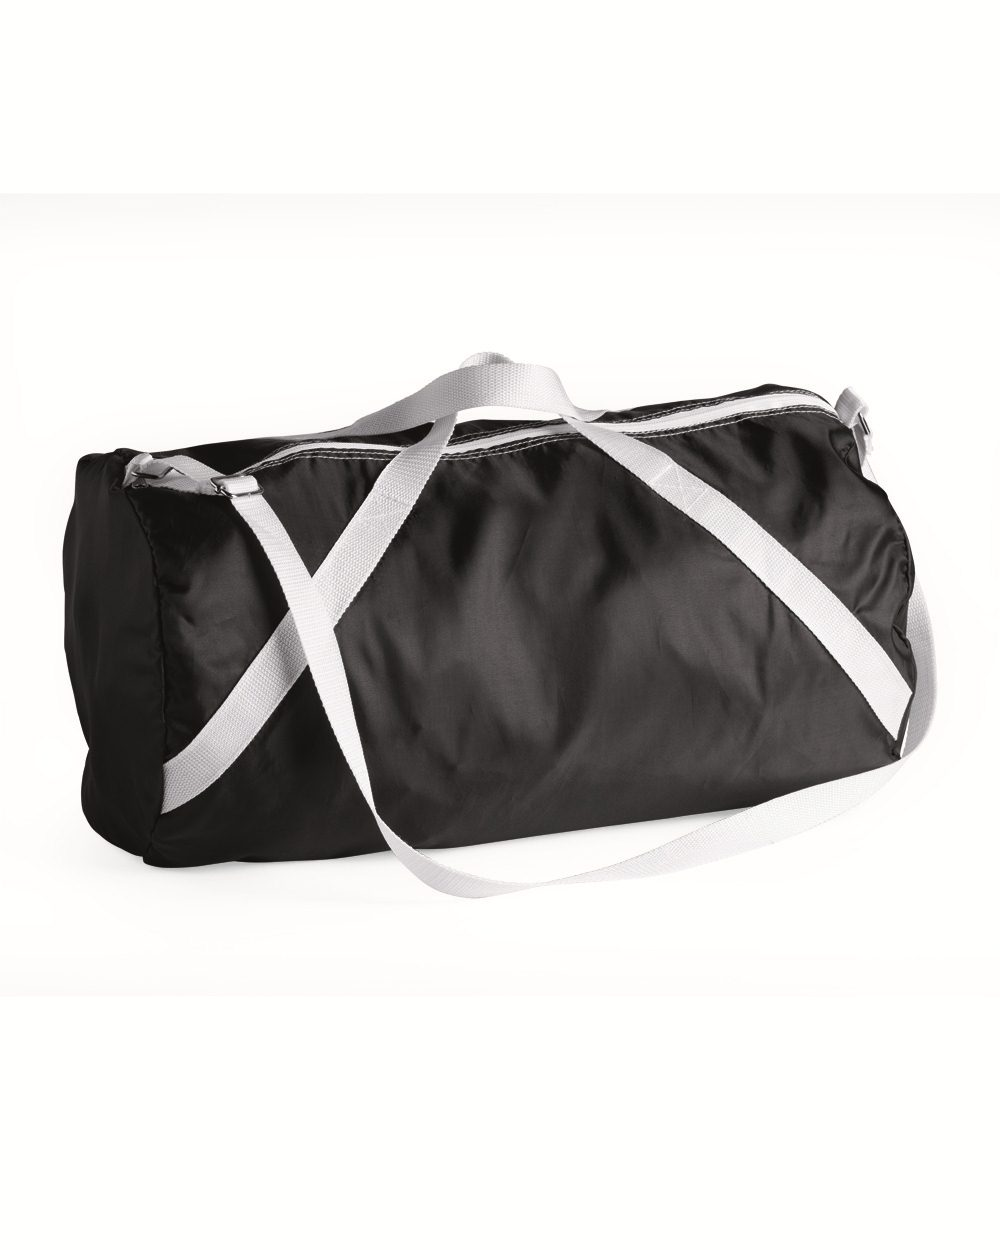 Liberty Bags Nylon Roll Bag - FT004